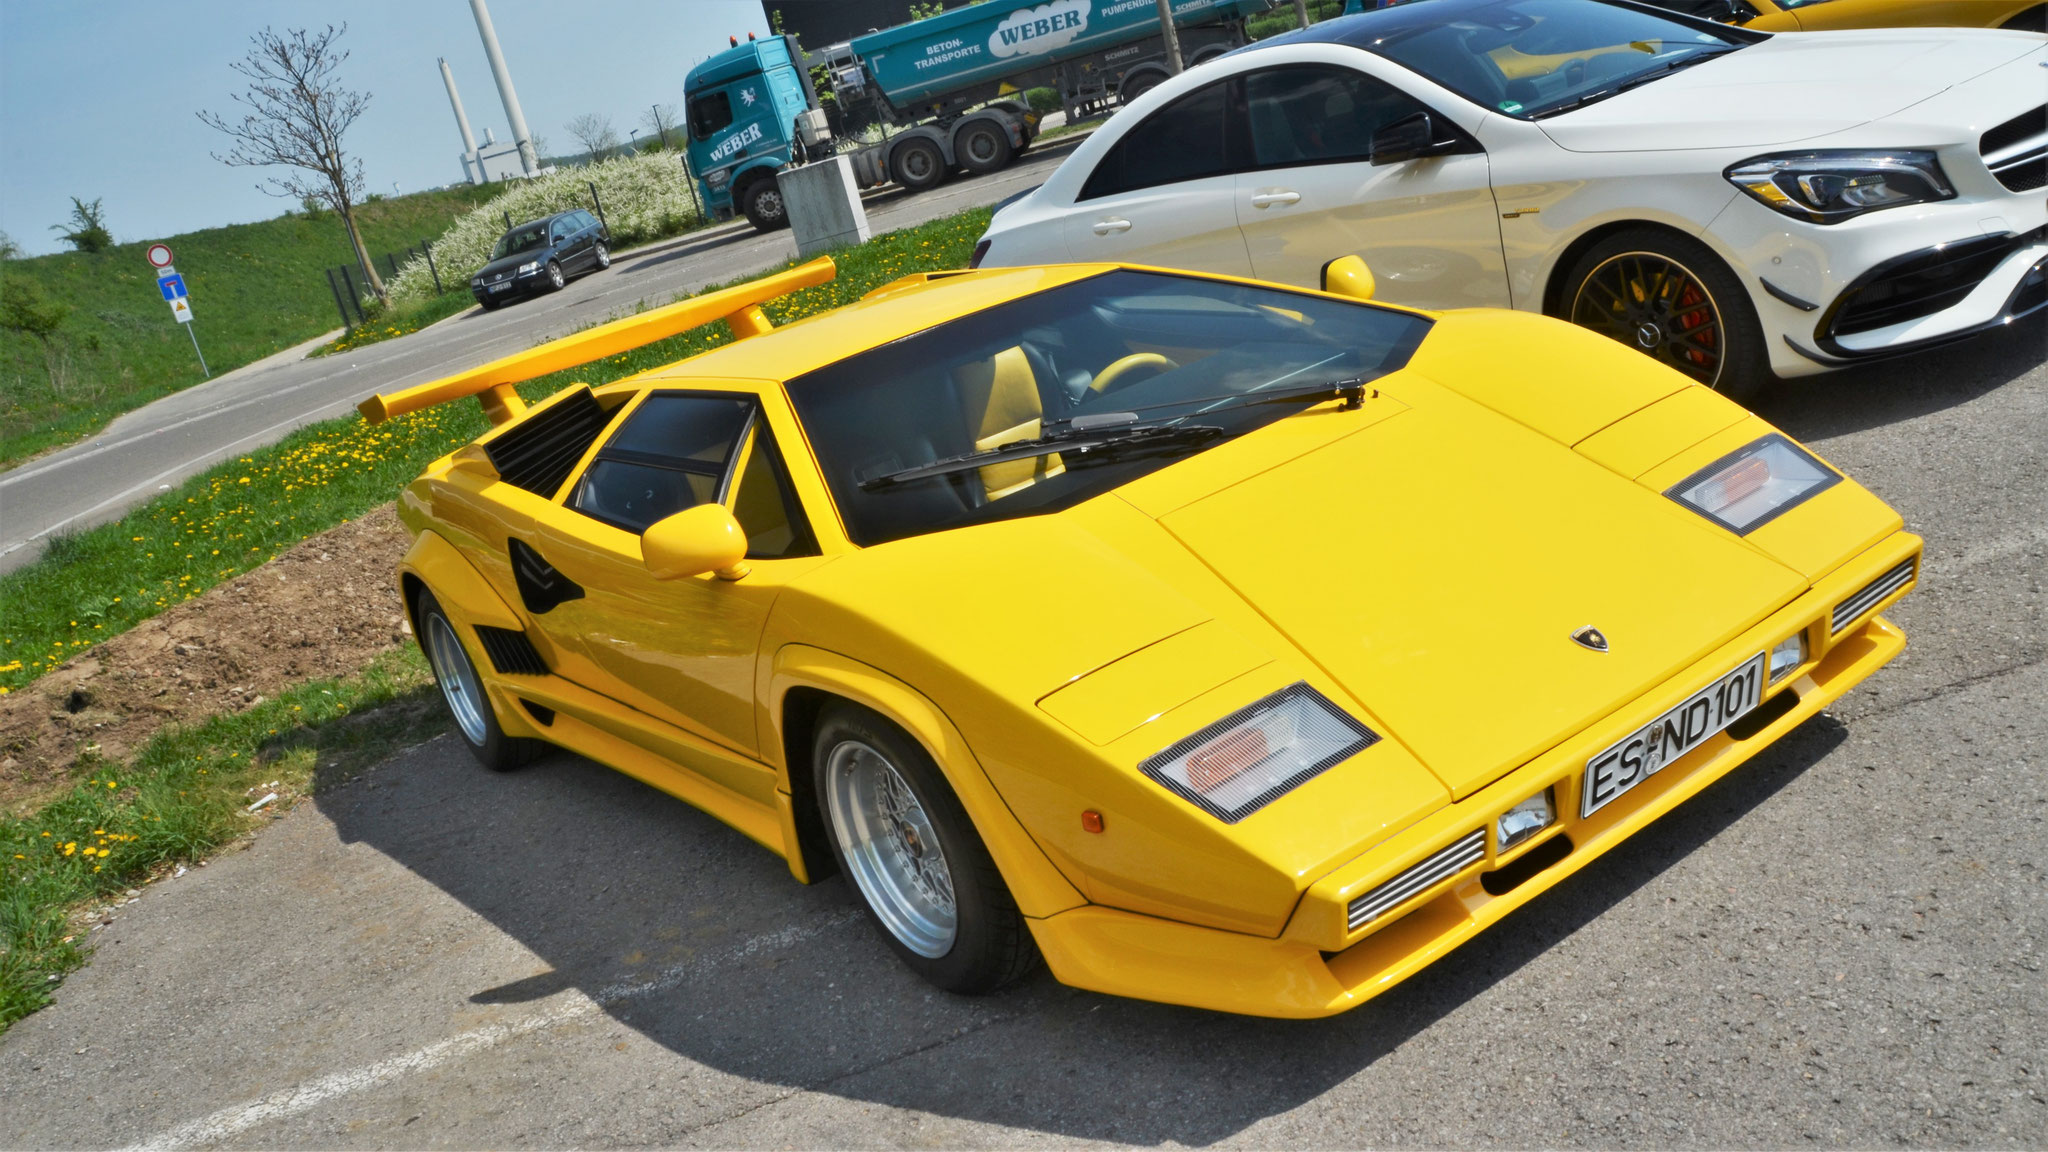 Lamborghini  Countach 5000 S - ES-ND-101